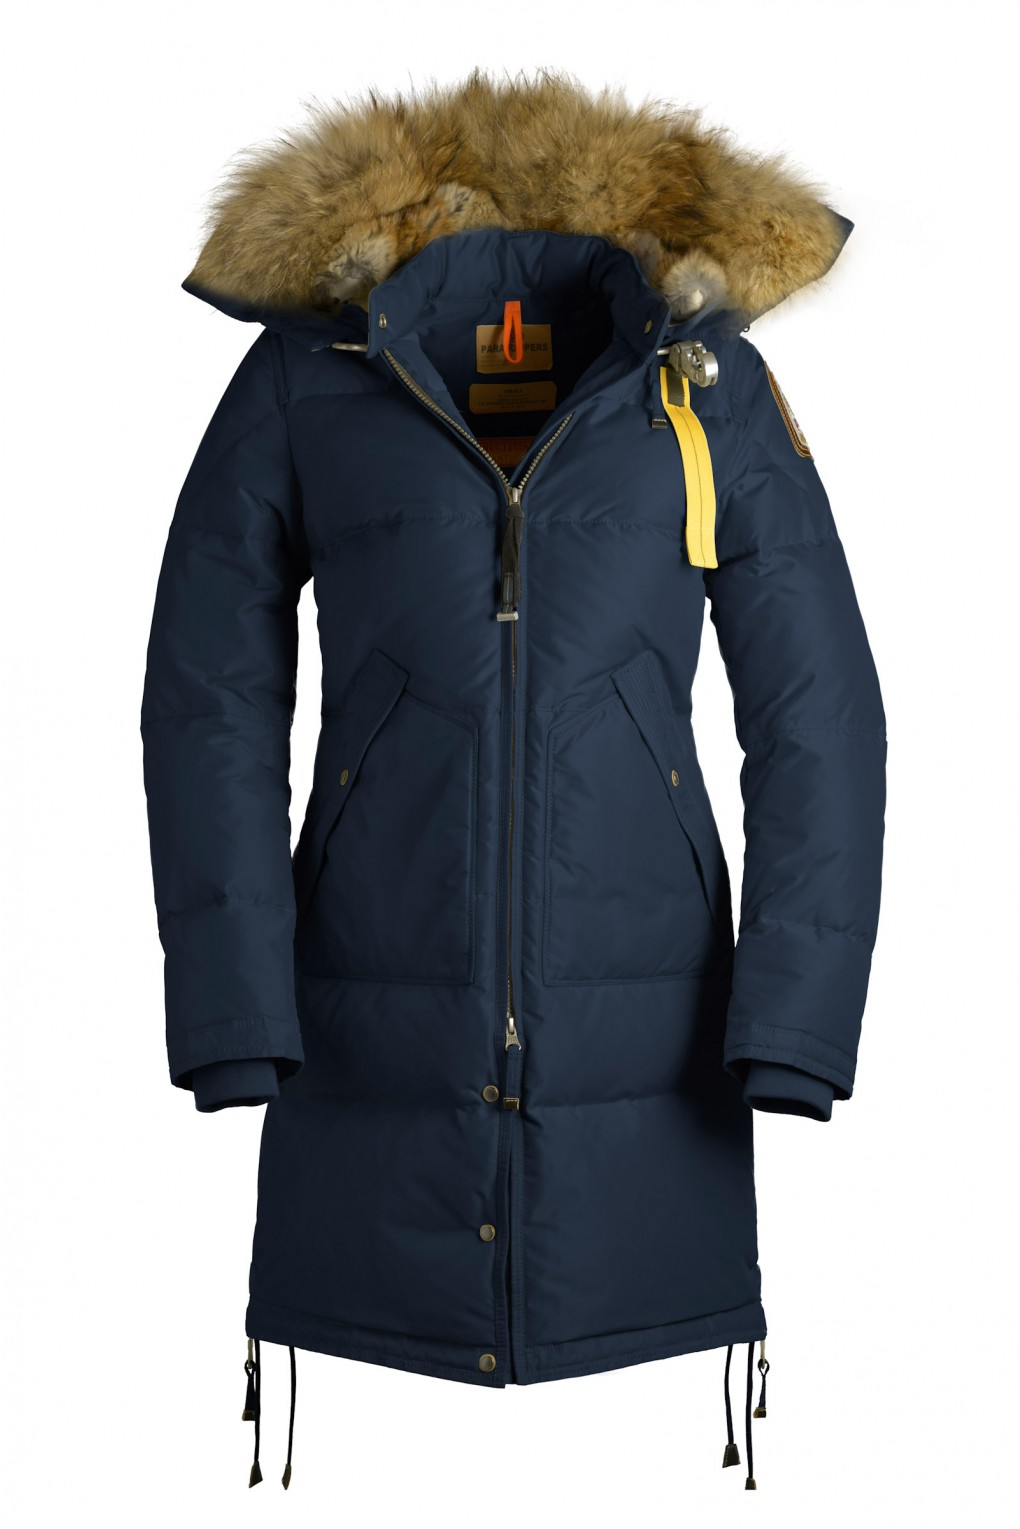 parajumpers LONG BEAR woman outerwear Marine